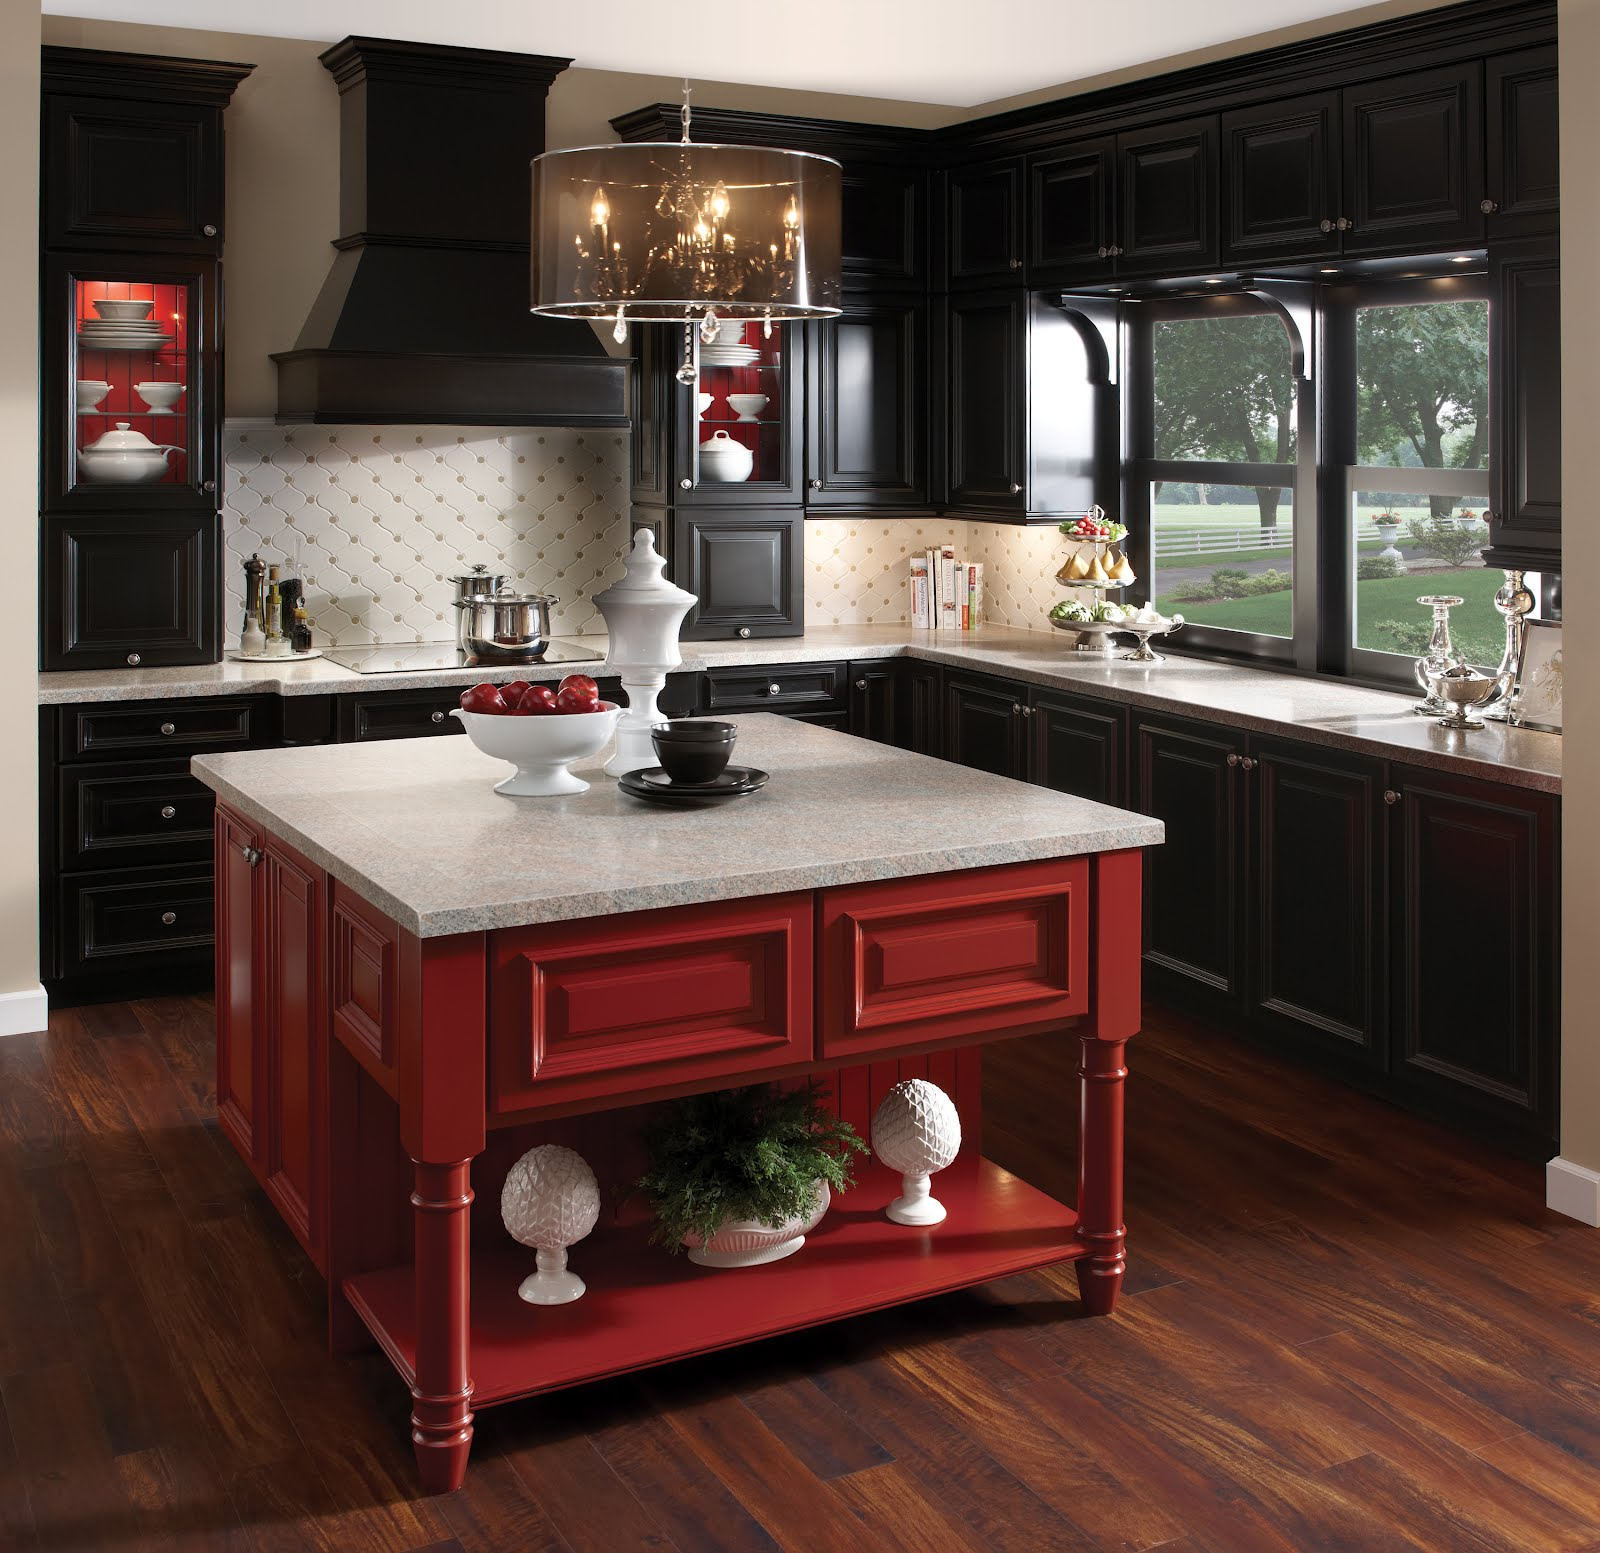 2012 trends post cabinetry guest post by sarah reep of for Black onyx kitchen cabinets